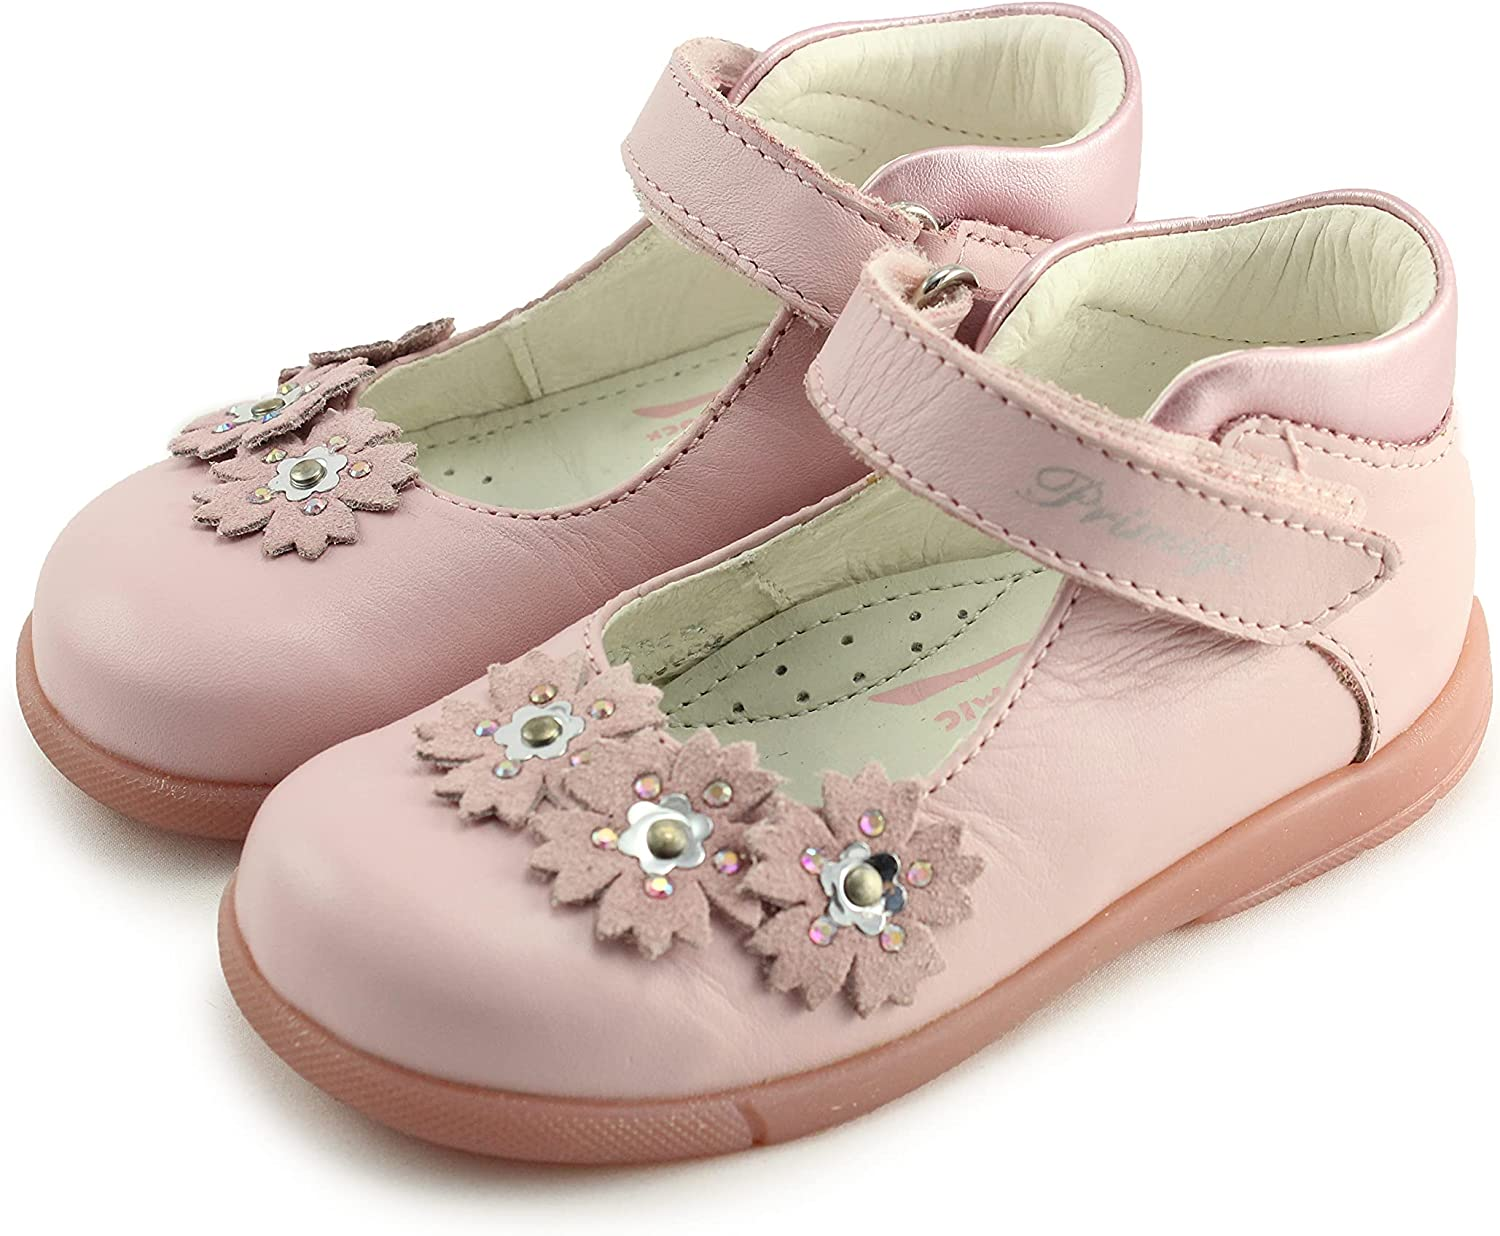 Primigi Girls Mary Jane Leather Shoes with Arch, Ankle, and Orthopedic Support (30221/00 Zaidi)